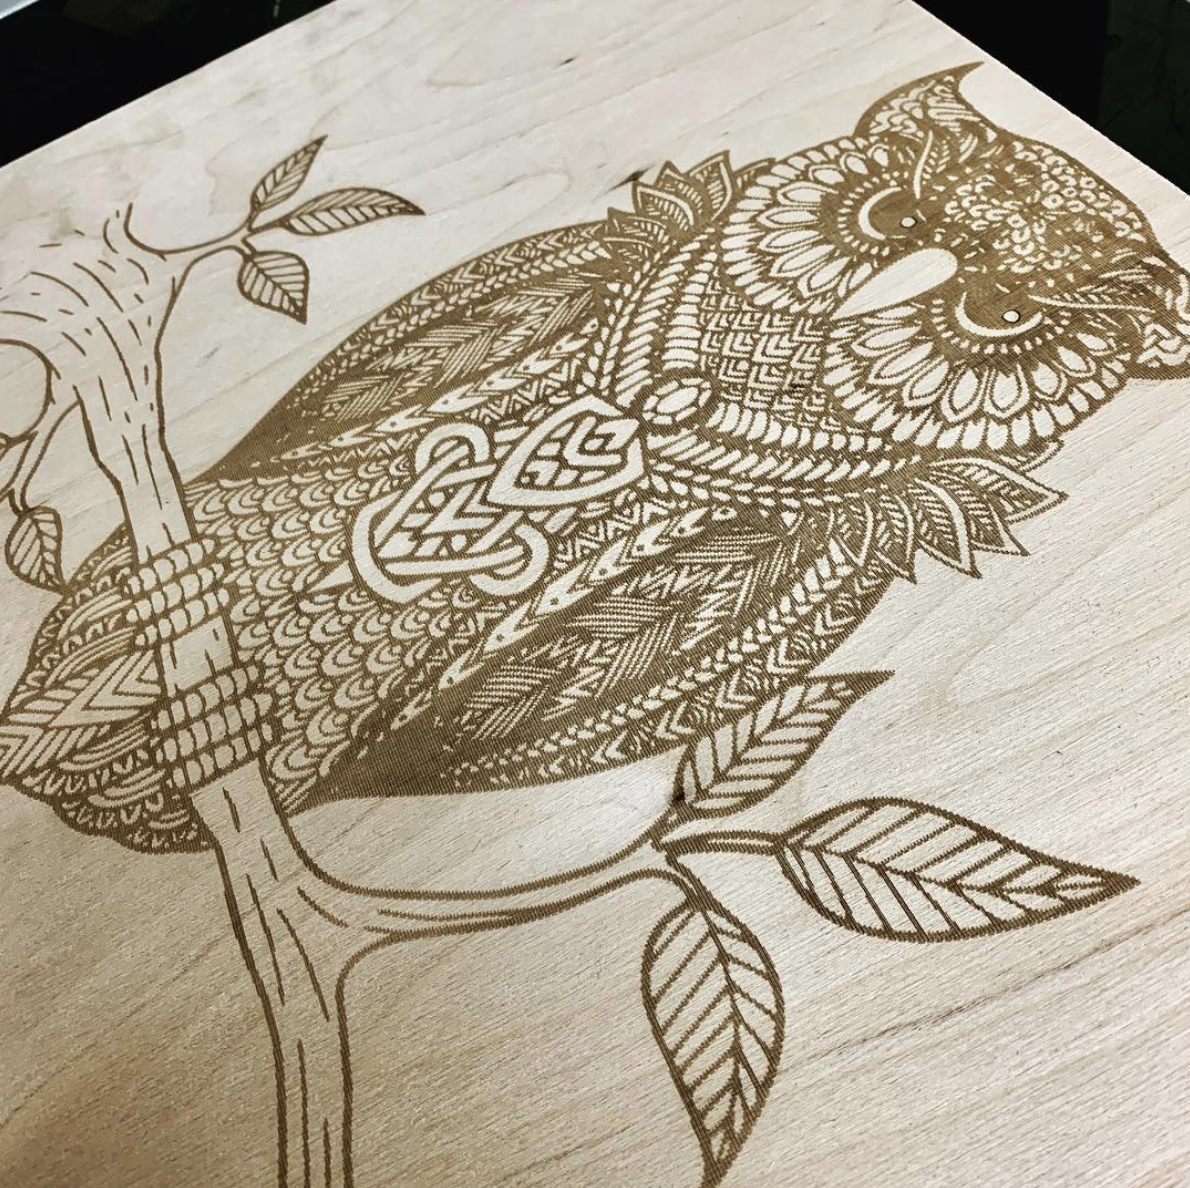 Laser engraving example on wood.